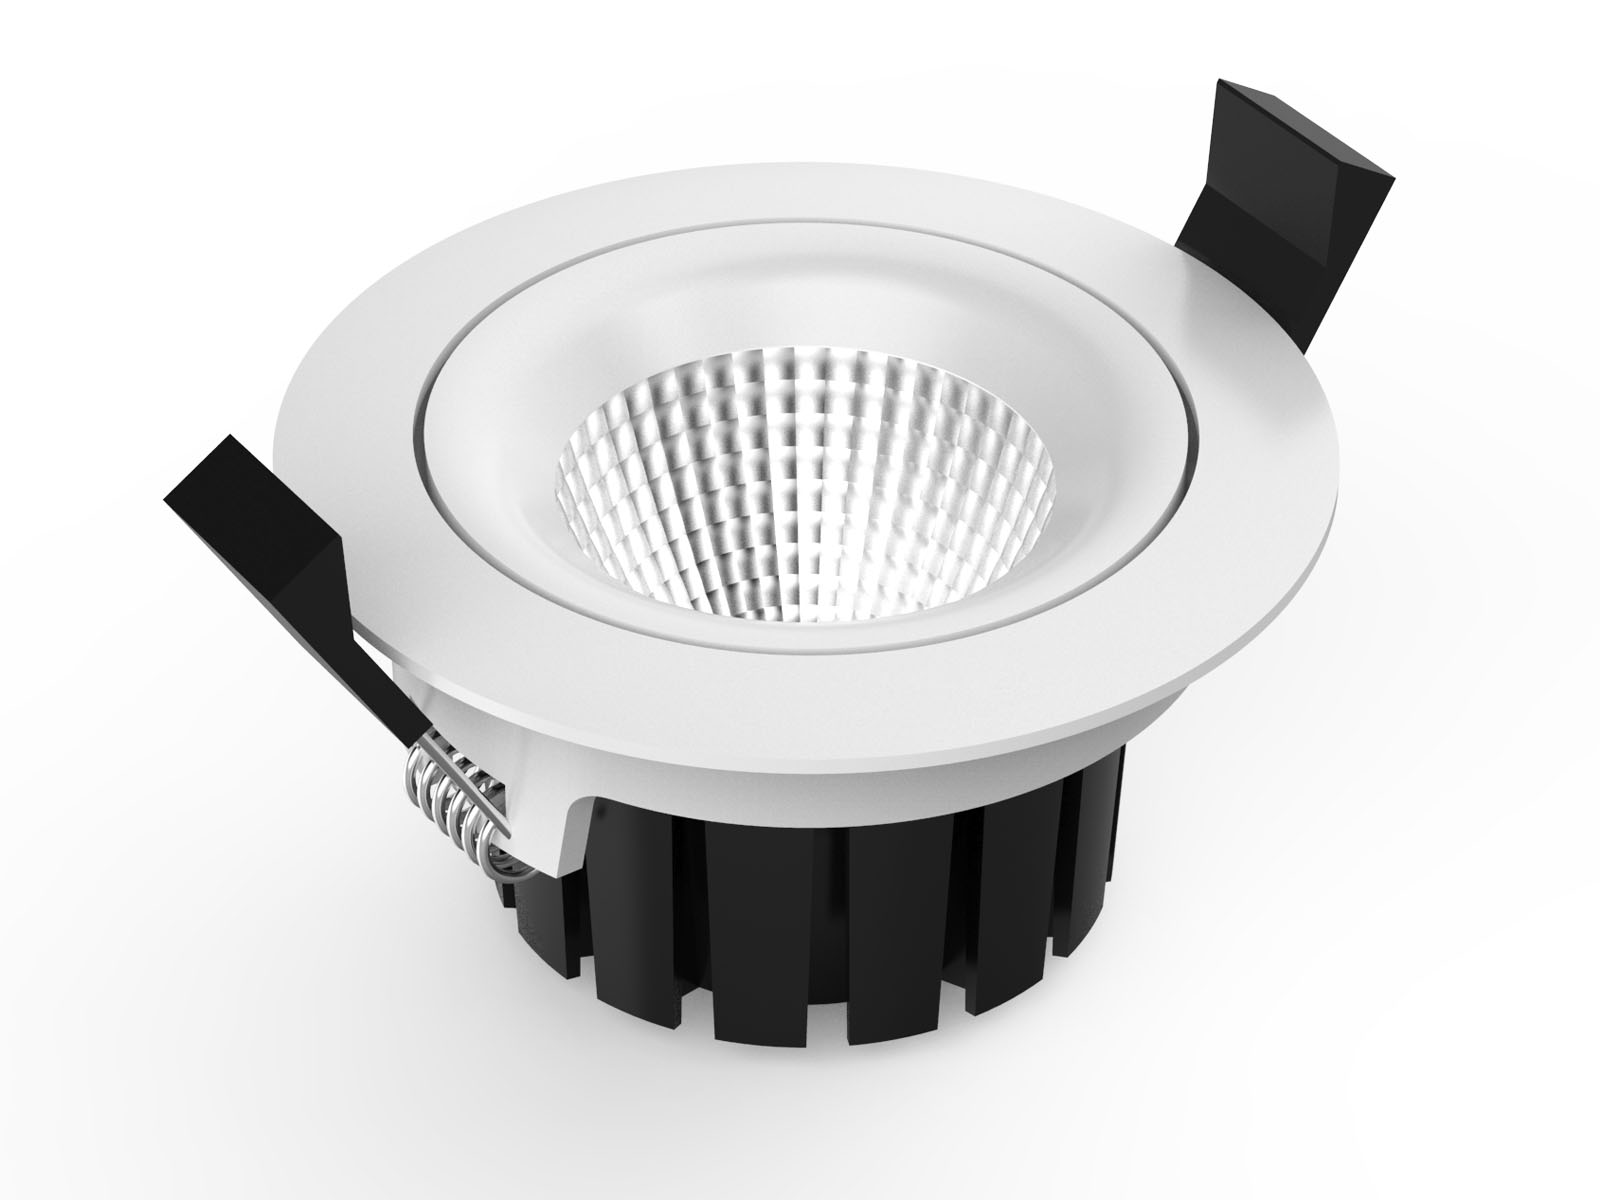 CL76 2 led downlight dimming